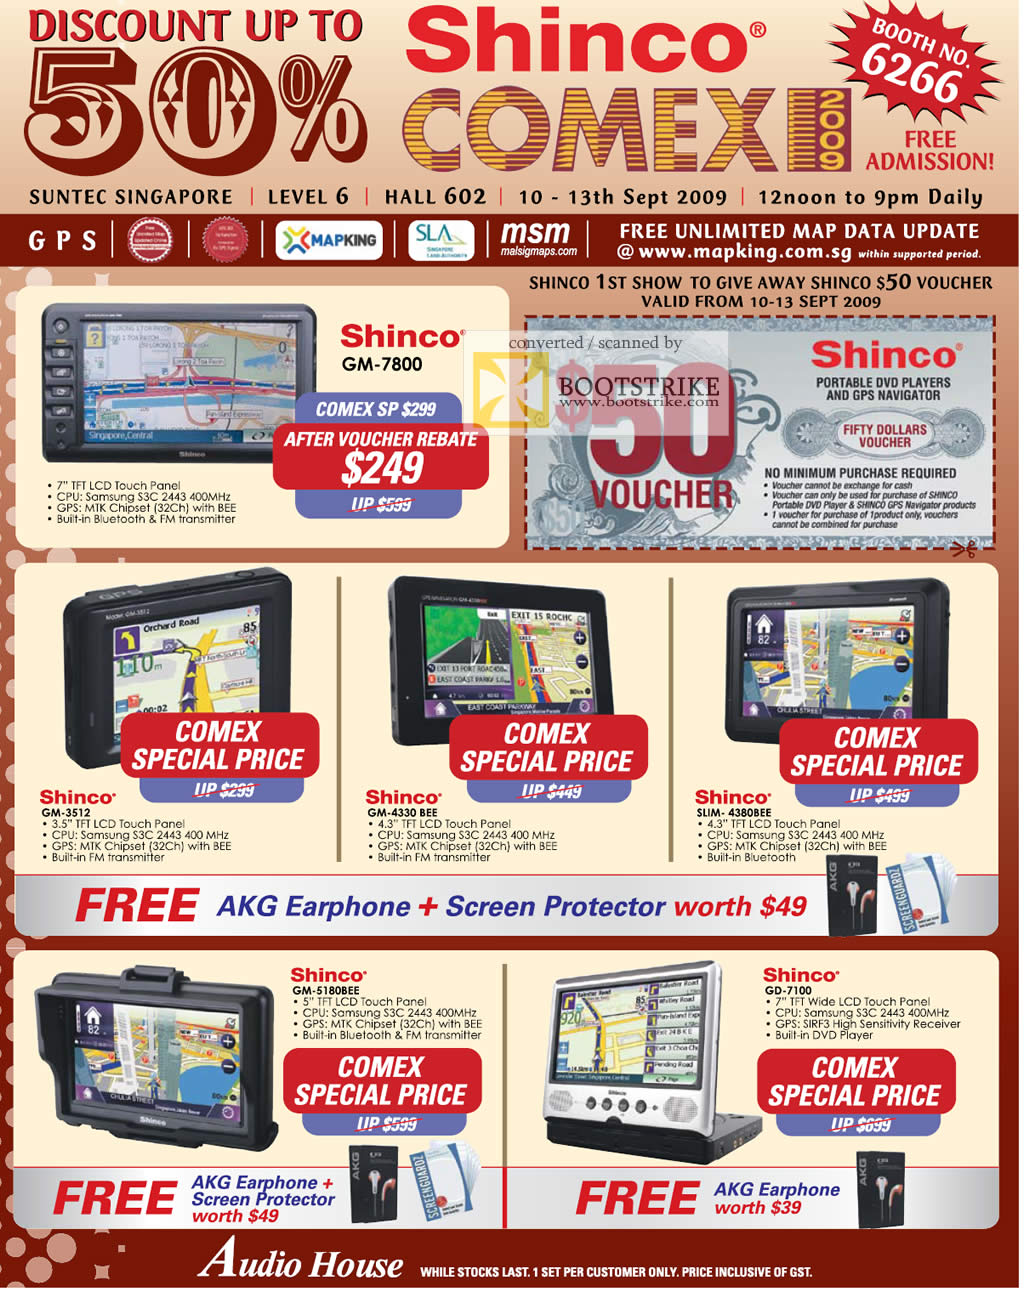 Comex 2009 price list image brochure of Shinco GM-7800 GPS 3512 4330 4380BEE 5180BEE 7100